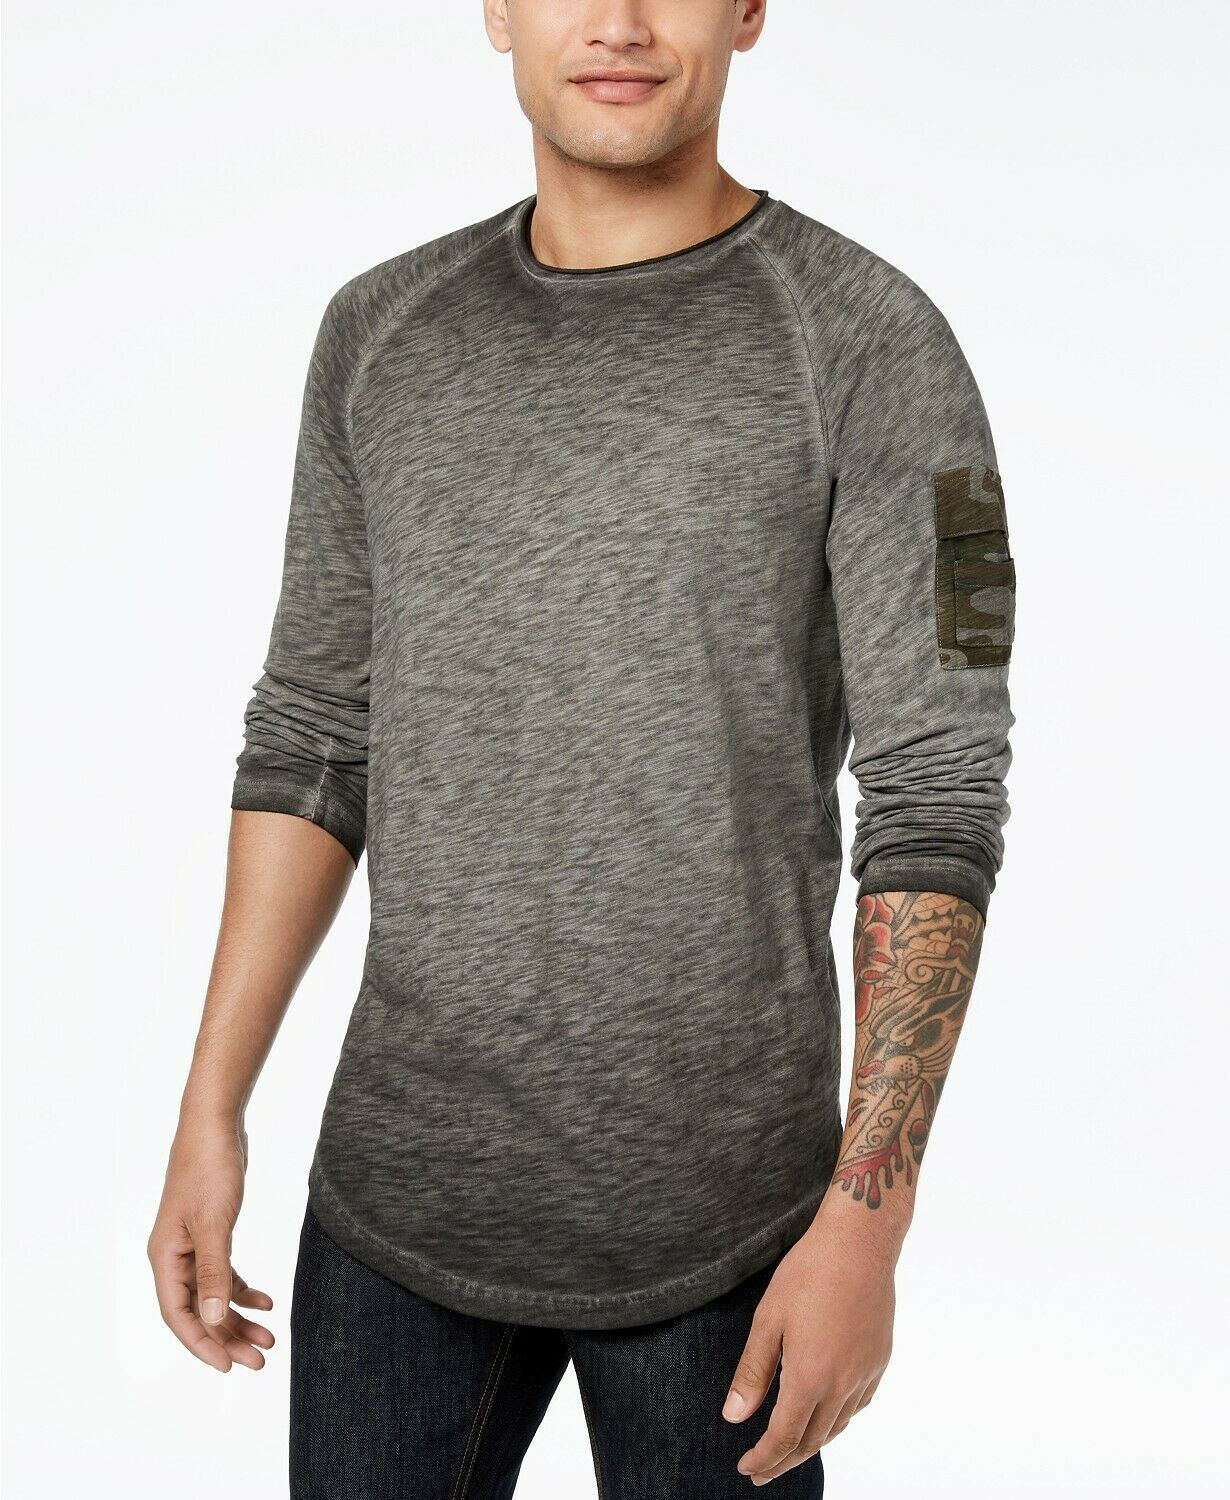 American Rag Men's Tonal Long-Sleeve T-Shirt, Size L, MSRP $30